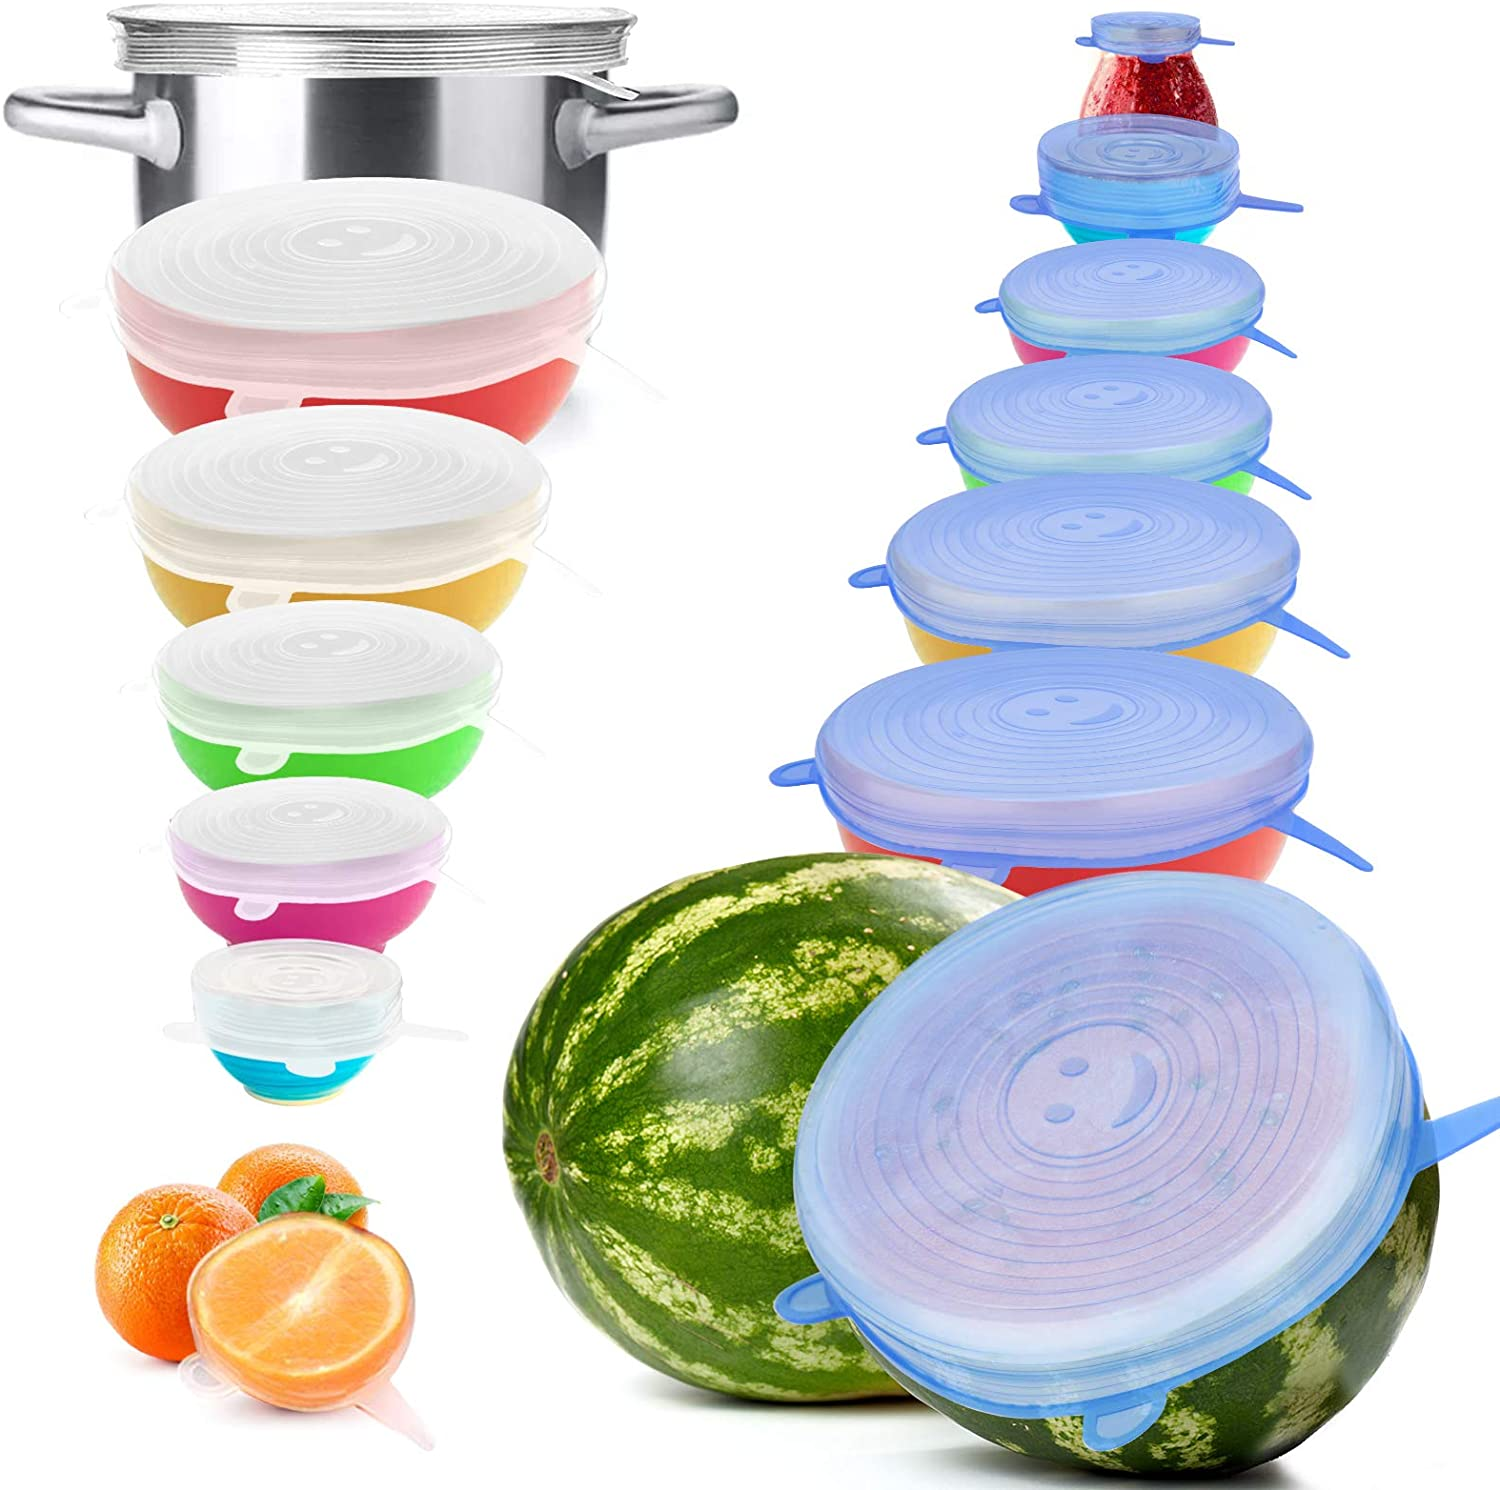 YXYL 14PCS Reusable Silicone Stretch Lids, Premium Stretch Silicone Lids for Food Storage, Flexible Round Silicone Bowl Covers, 7 Different Sizes Reusable Stretch and Seal Lids - Keep Food Fresh